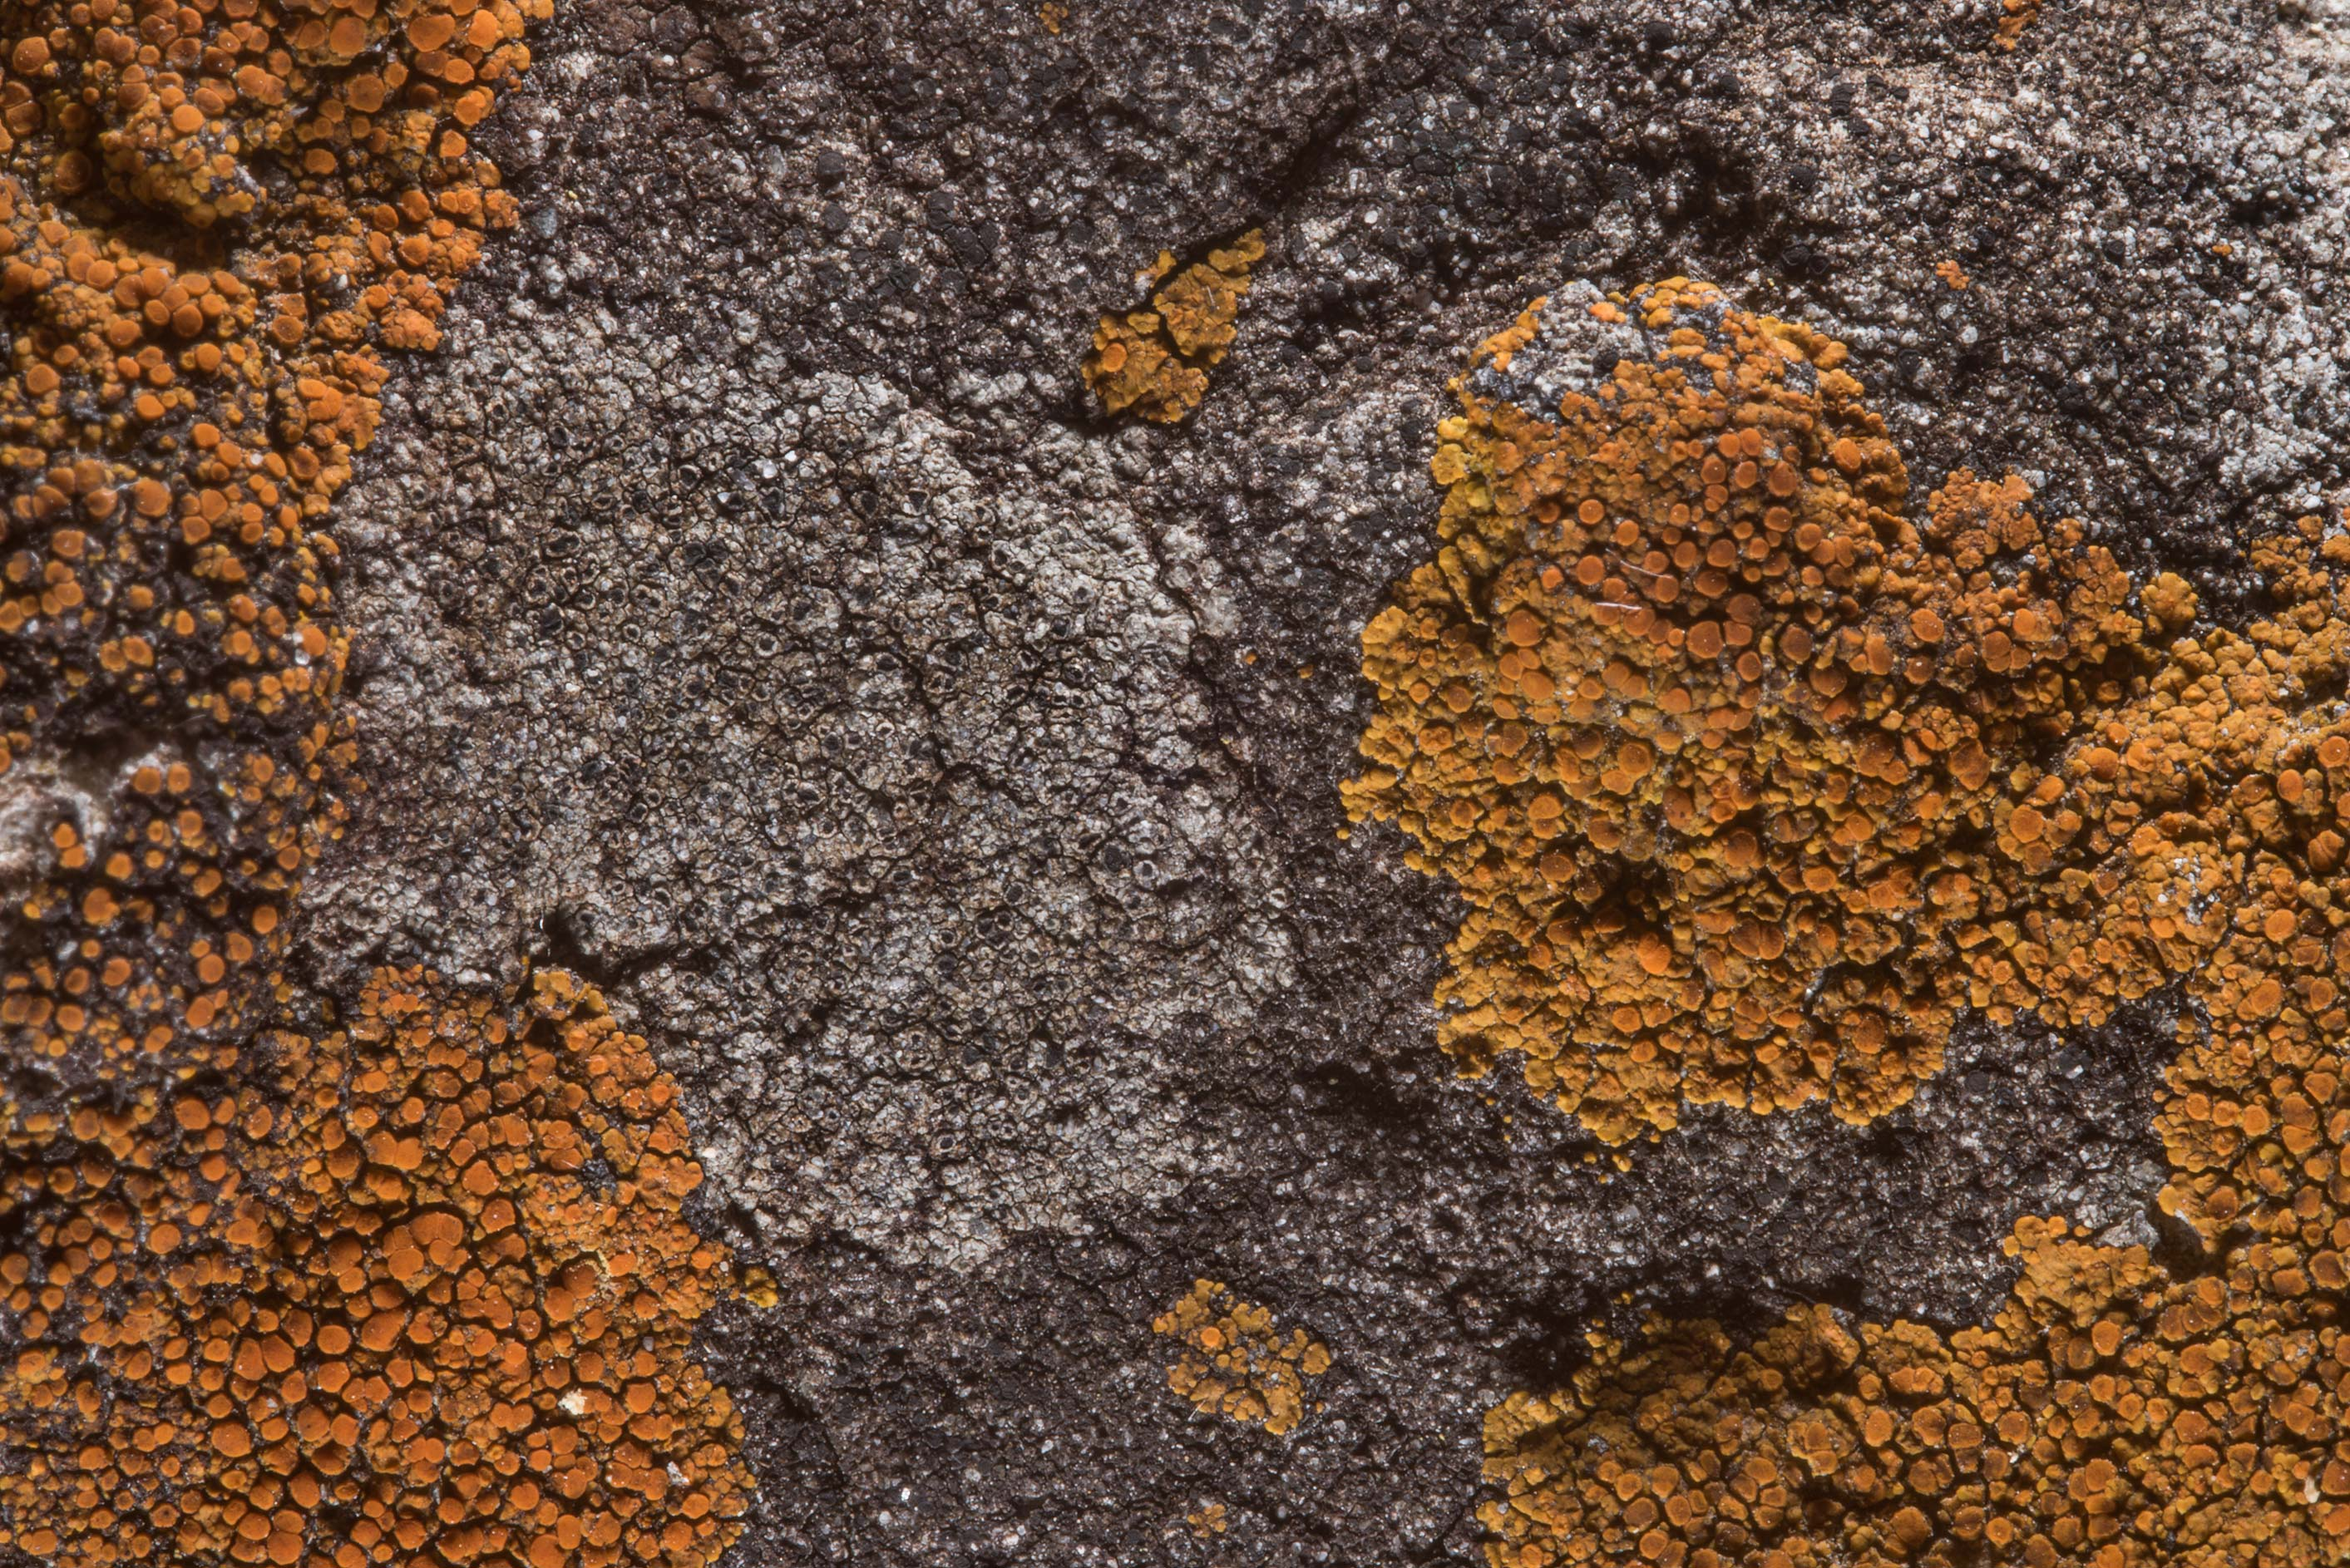 Caloplaca (orange) lichen on a roadside stone on...of Somerville Lake State Park. Texas